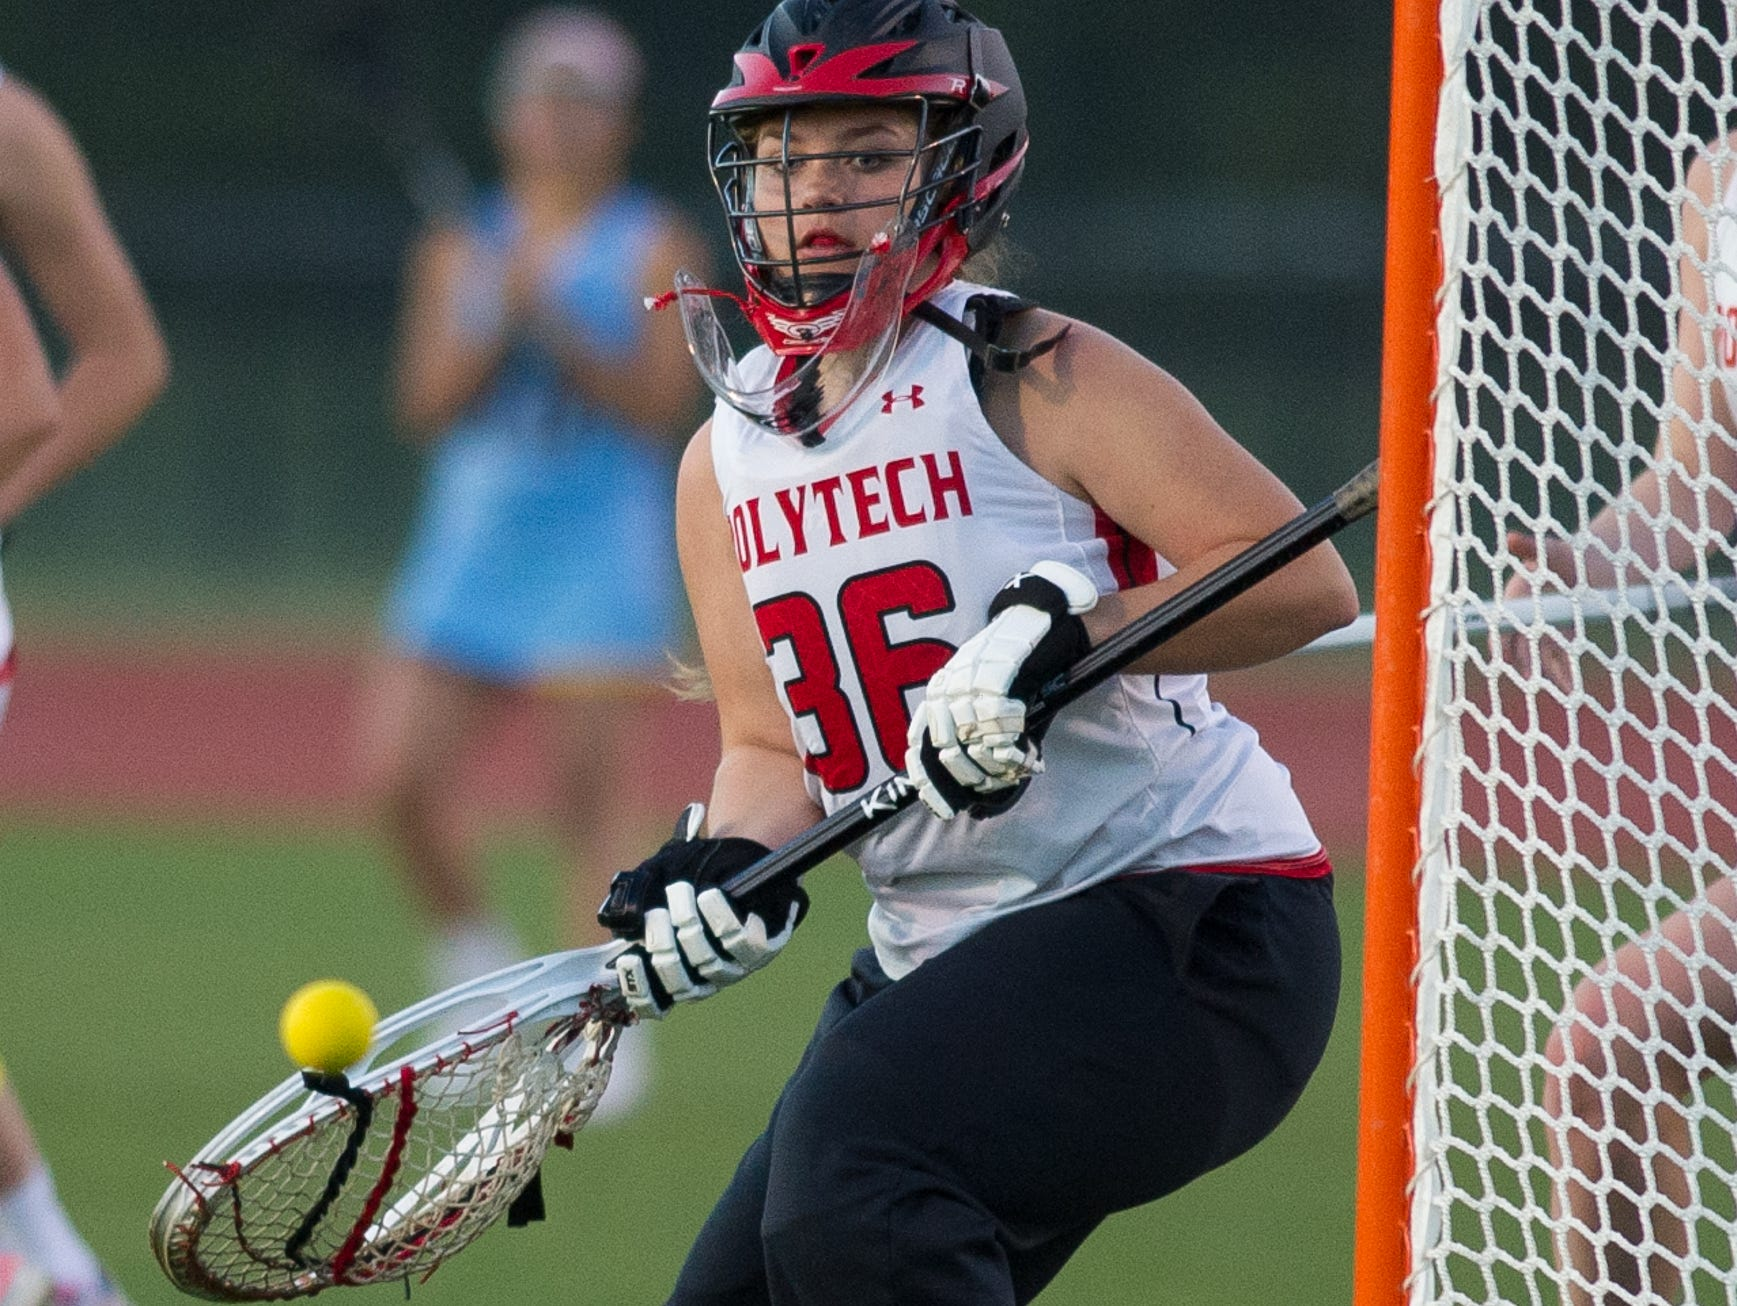 Polytech's goalie Shannon Stephan (36) watches as a shot from Cape Henlopen misses the goal.